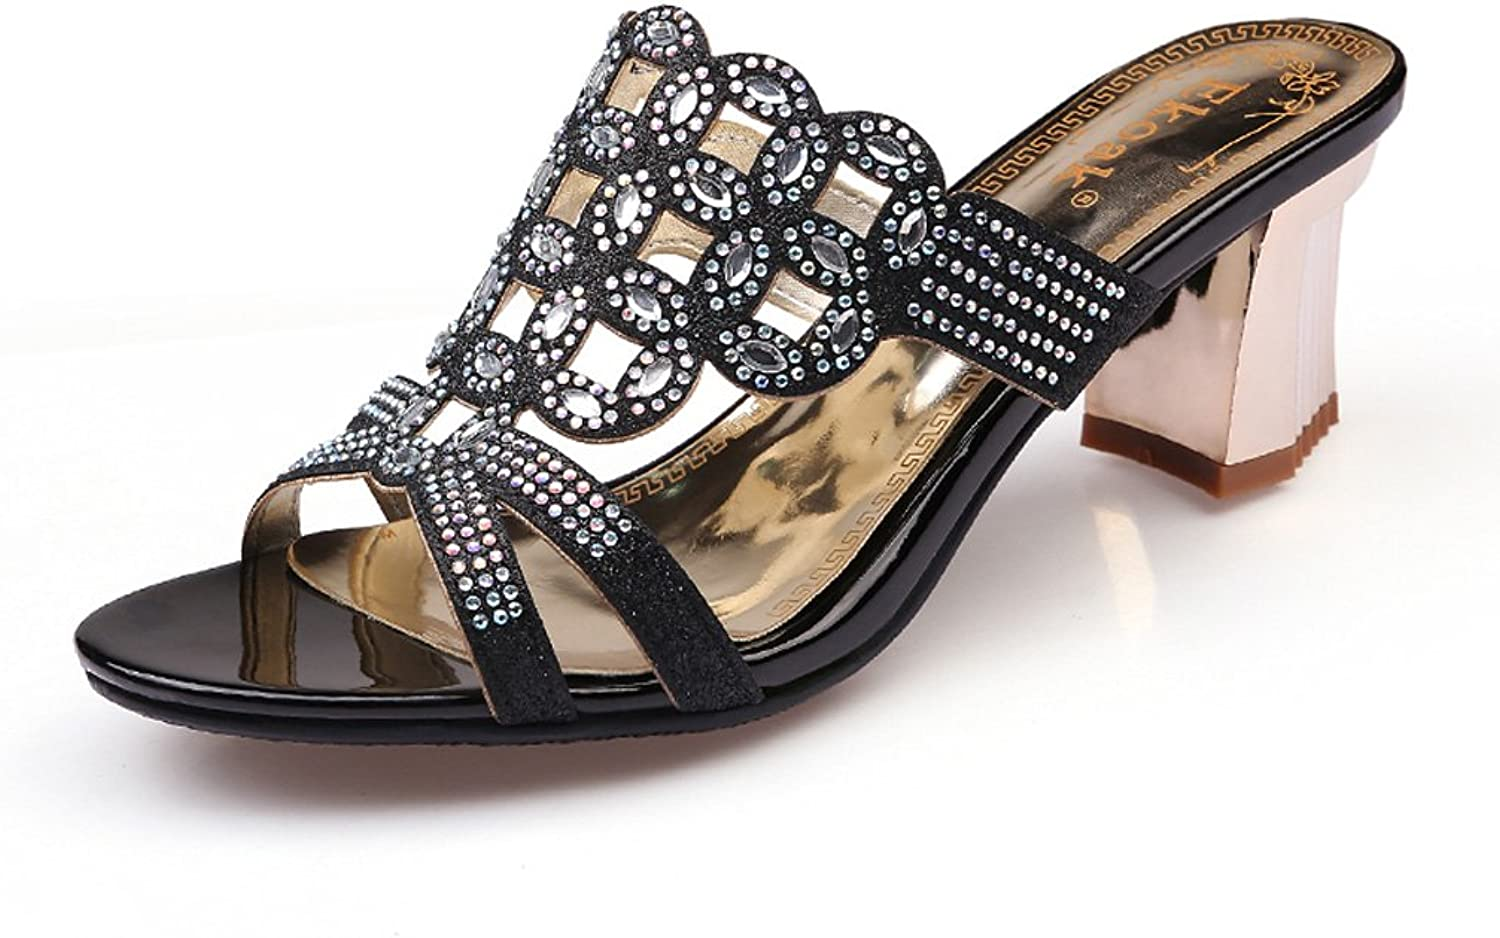 Genepeg Womens Sandals Rhinestone Cut-Outs High Heels Slippers Ladies Party Dress shoes Black